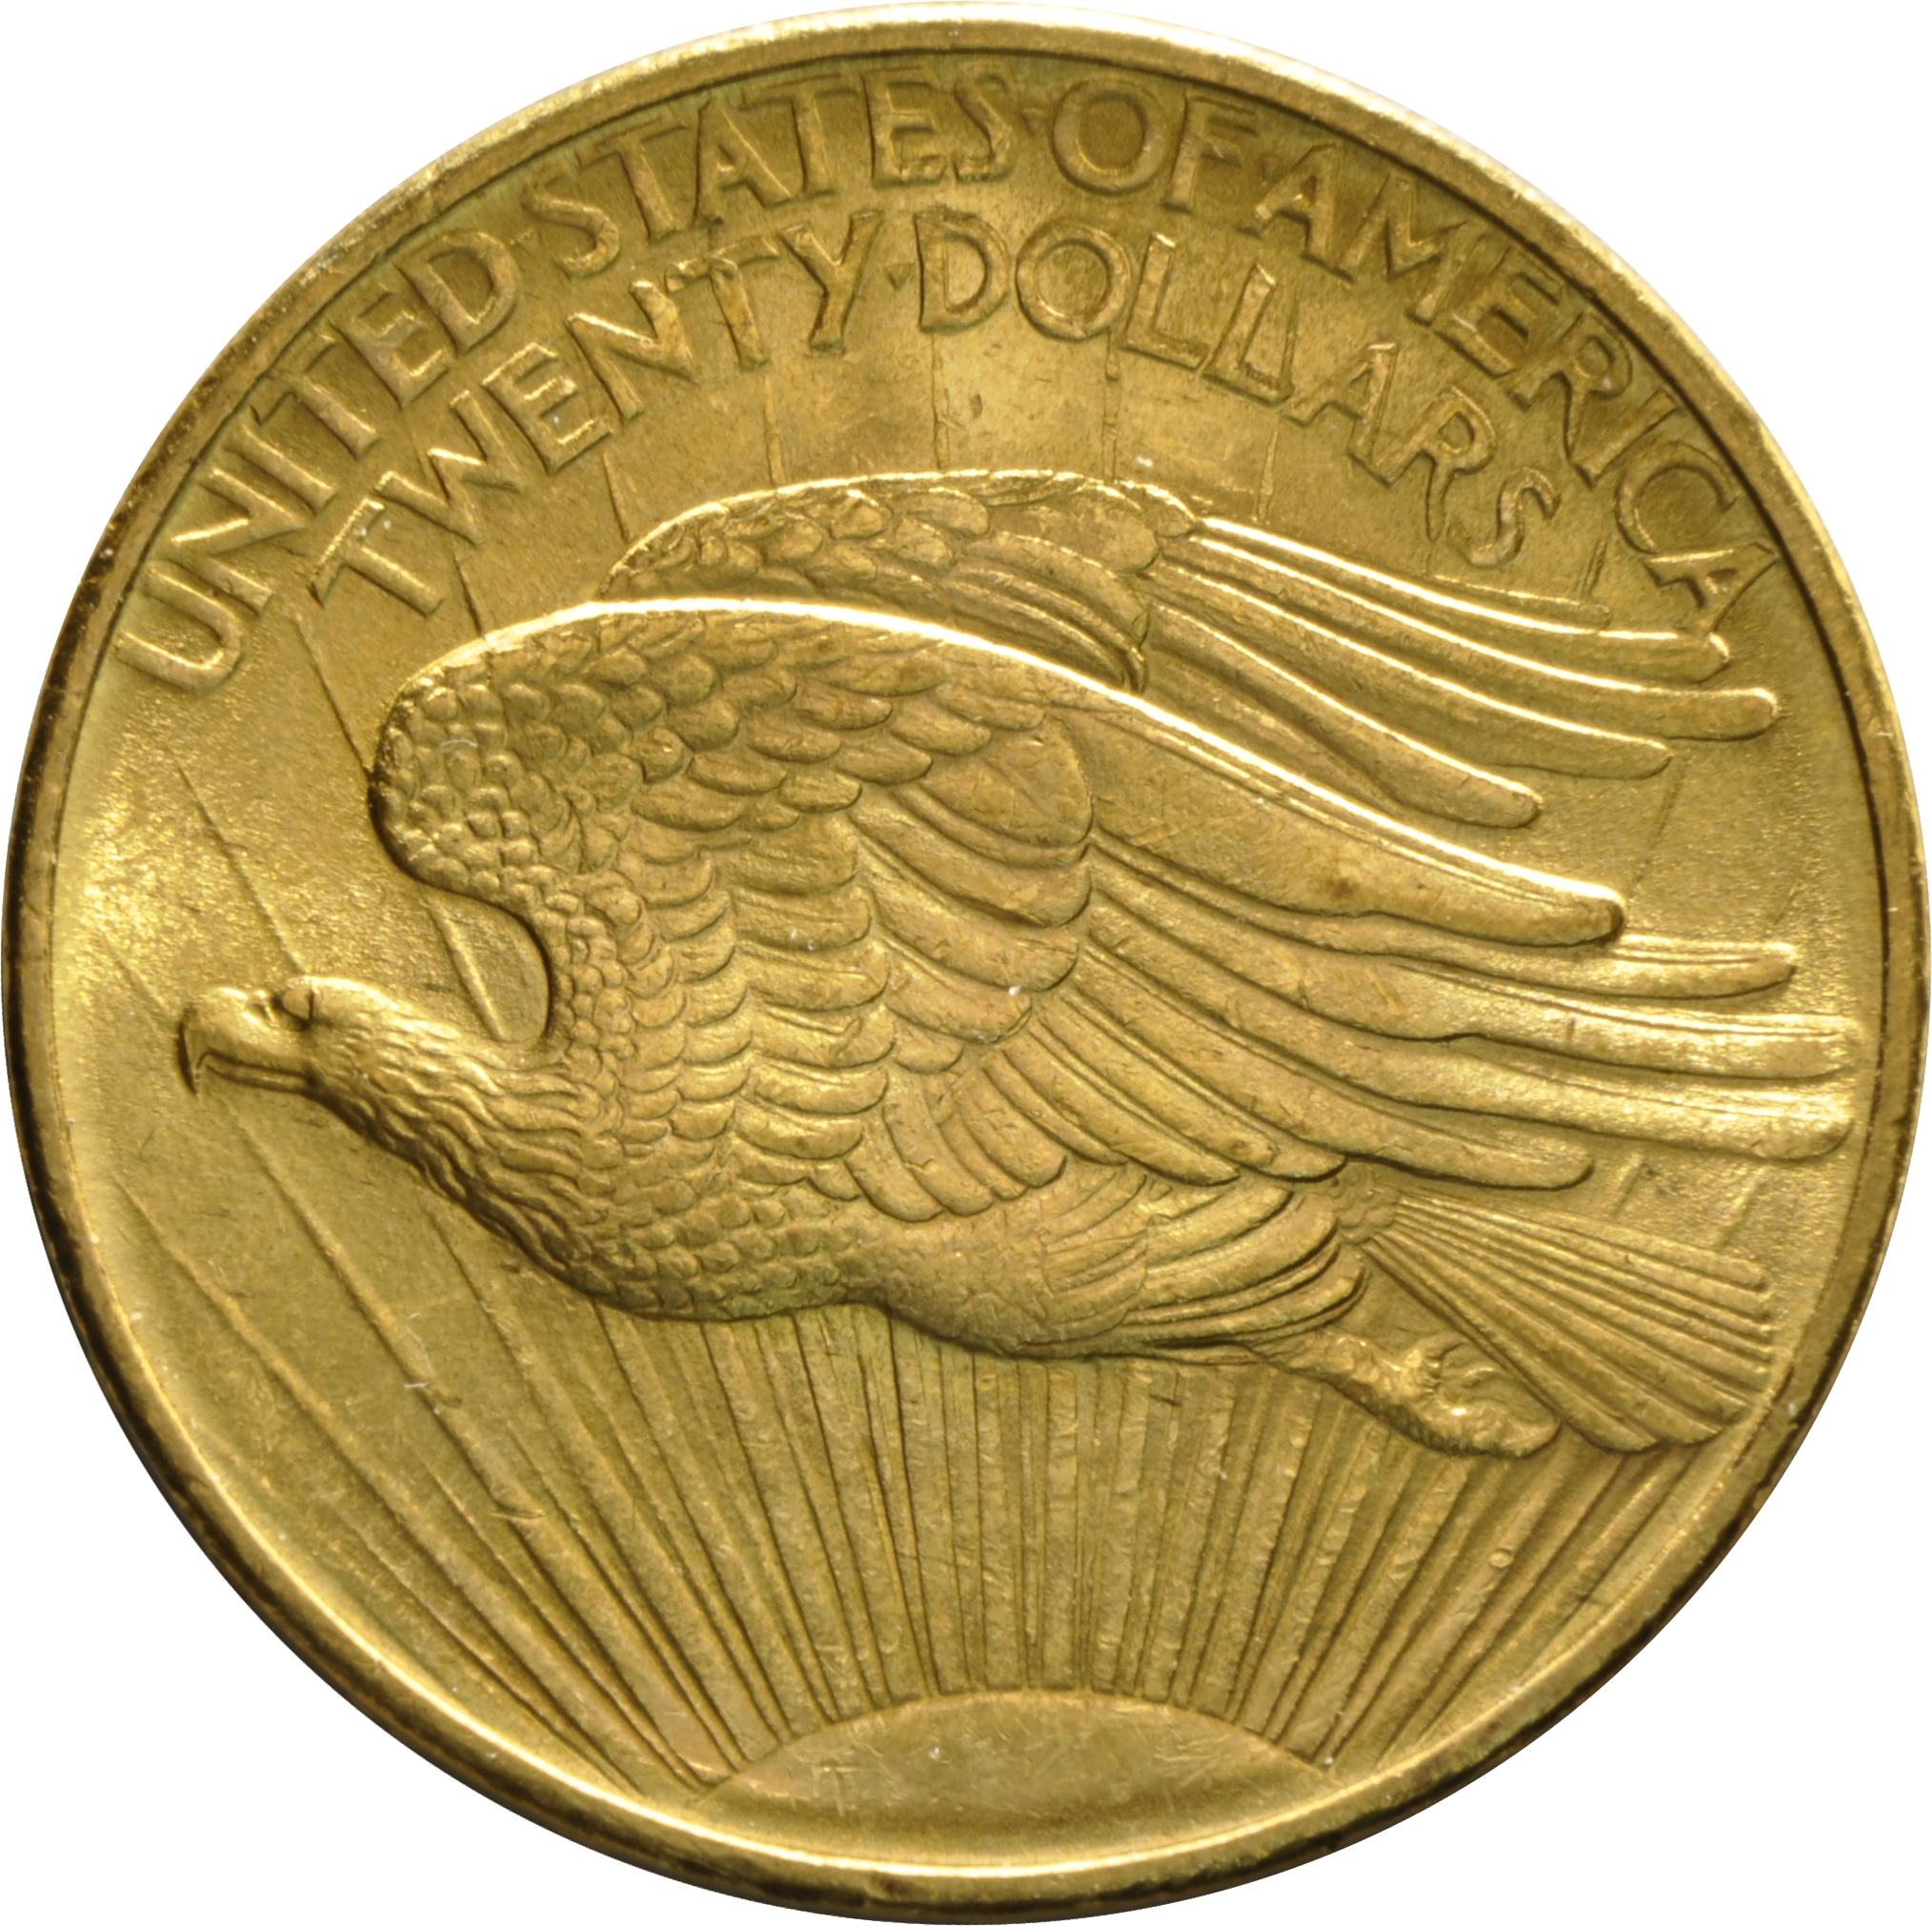 1908 20 Double Eagle St Gaudens Gold Coin Philadelphia No